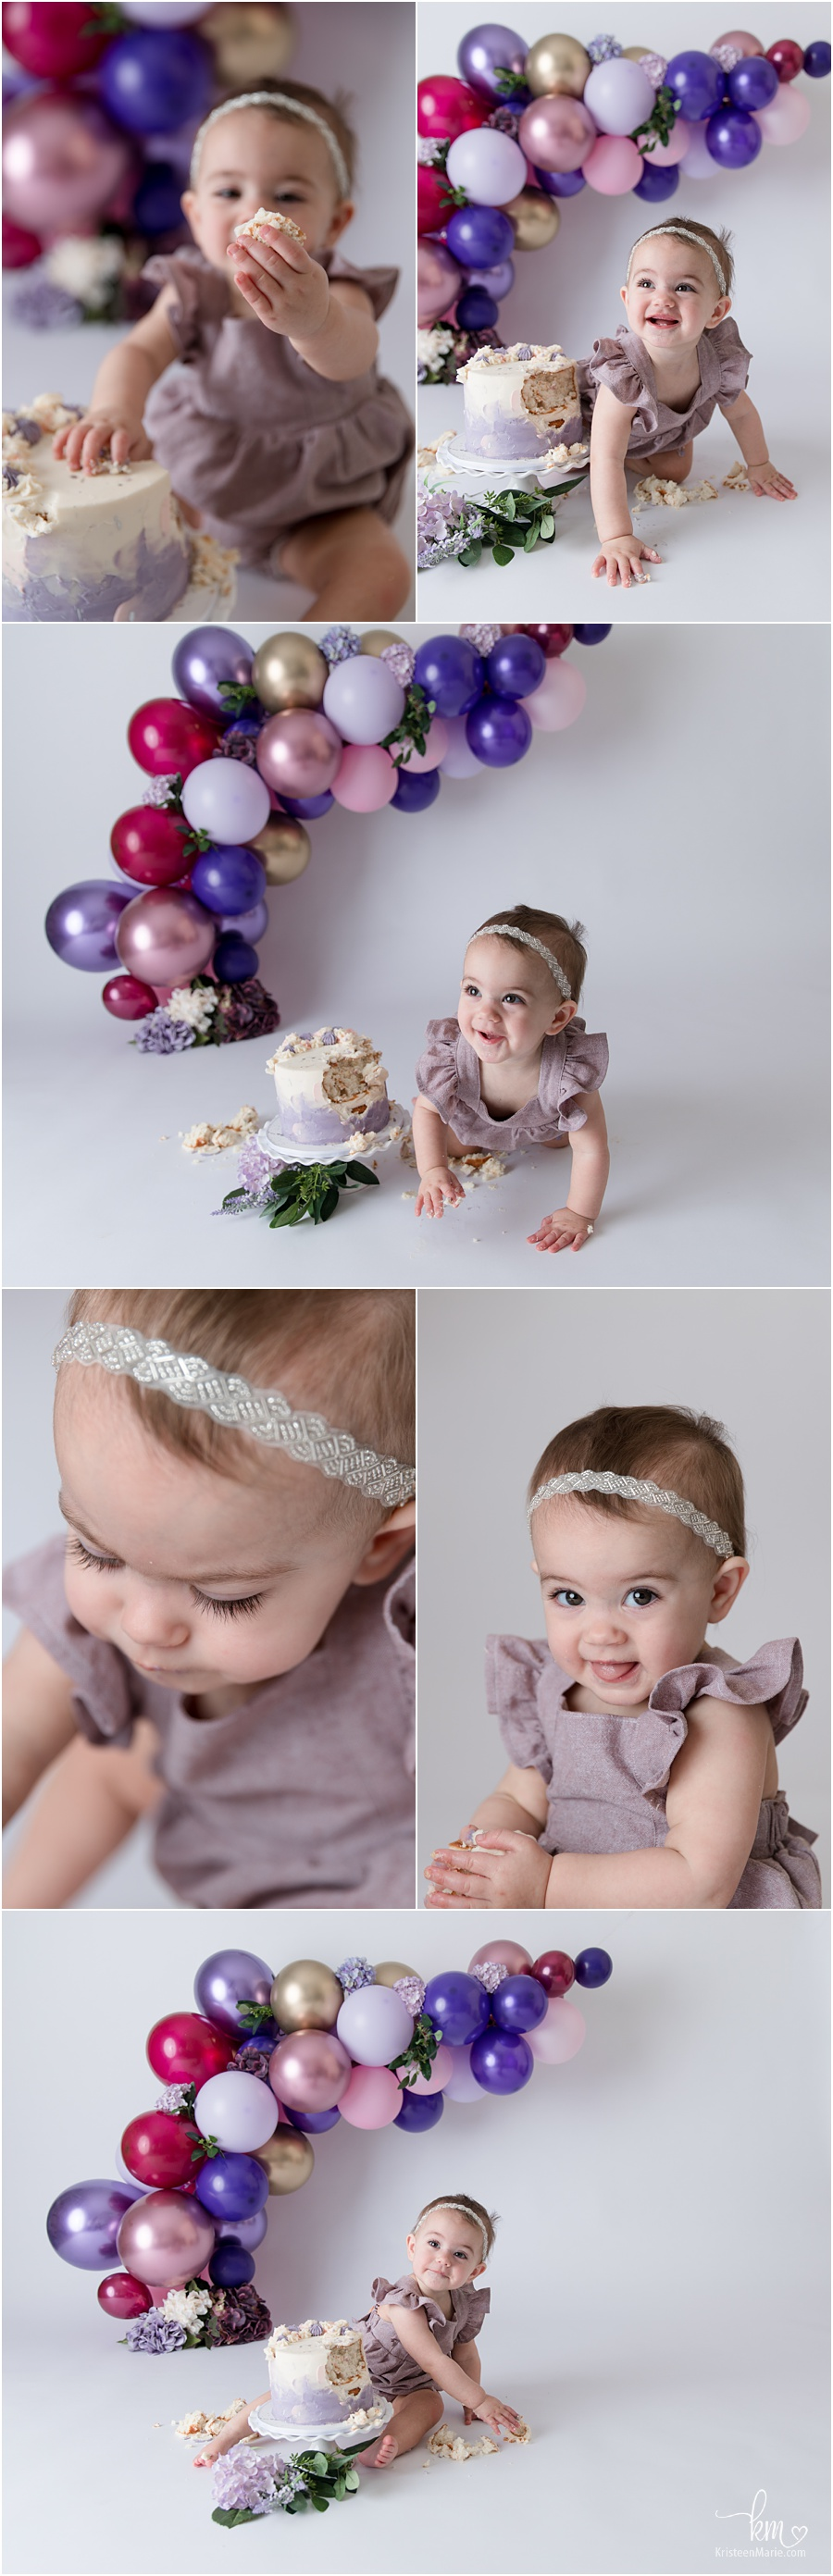 adorable 1st birthday cake smash session - soft purple baloon arch with pink and maroon